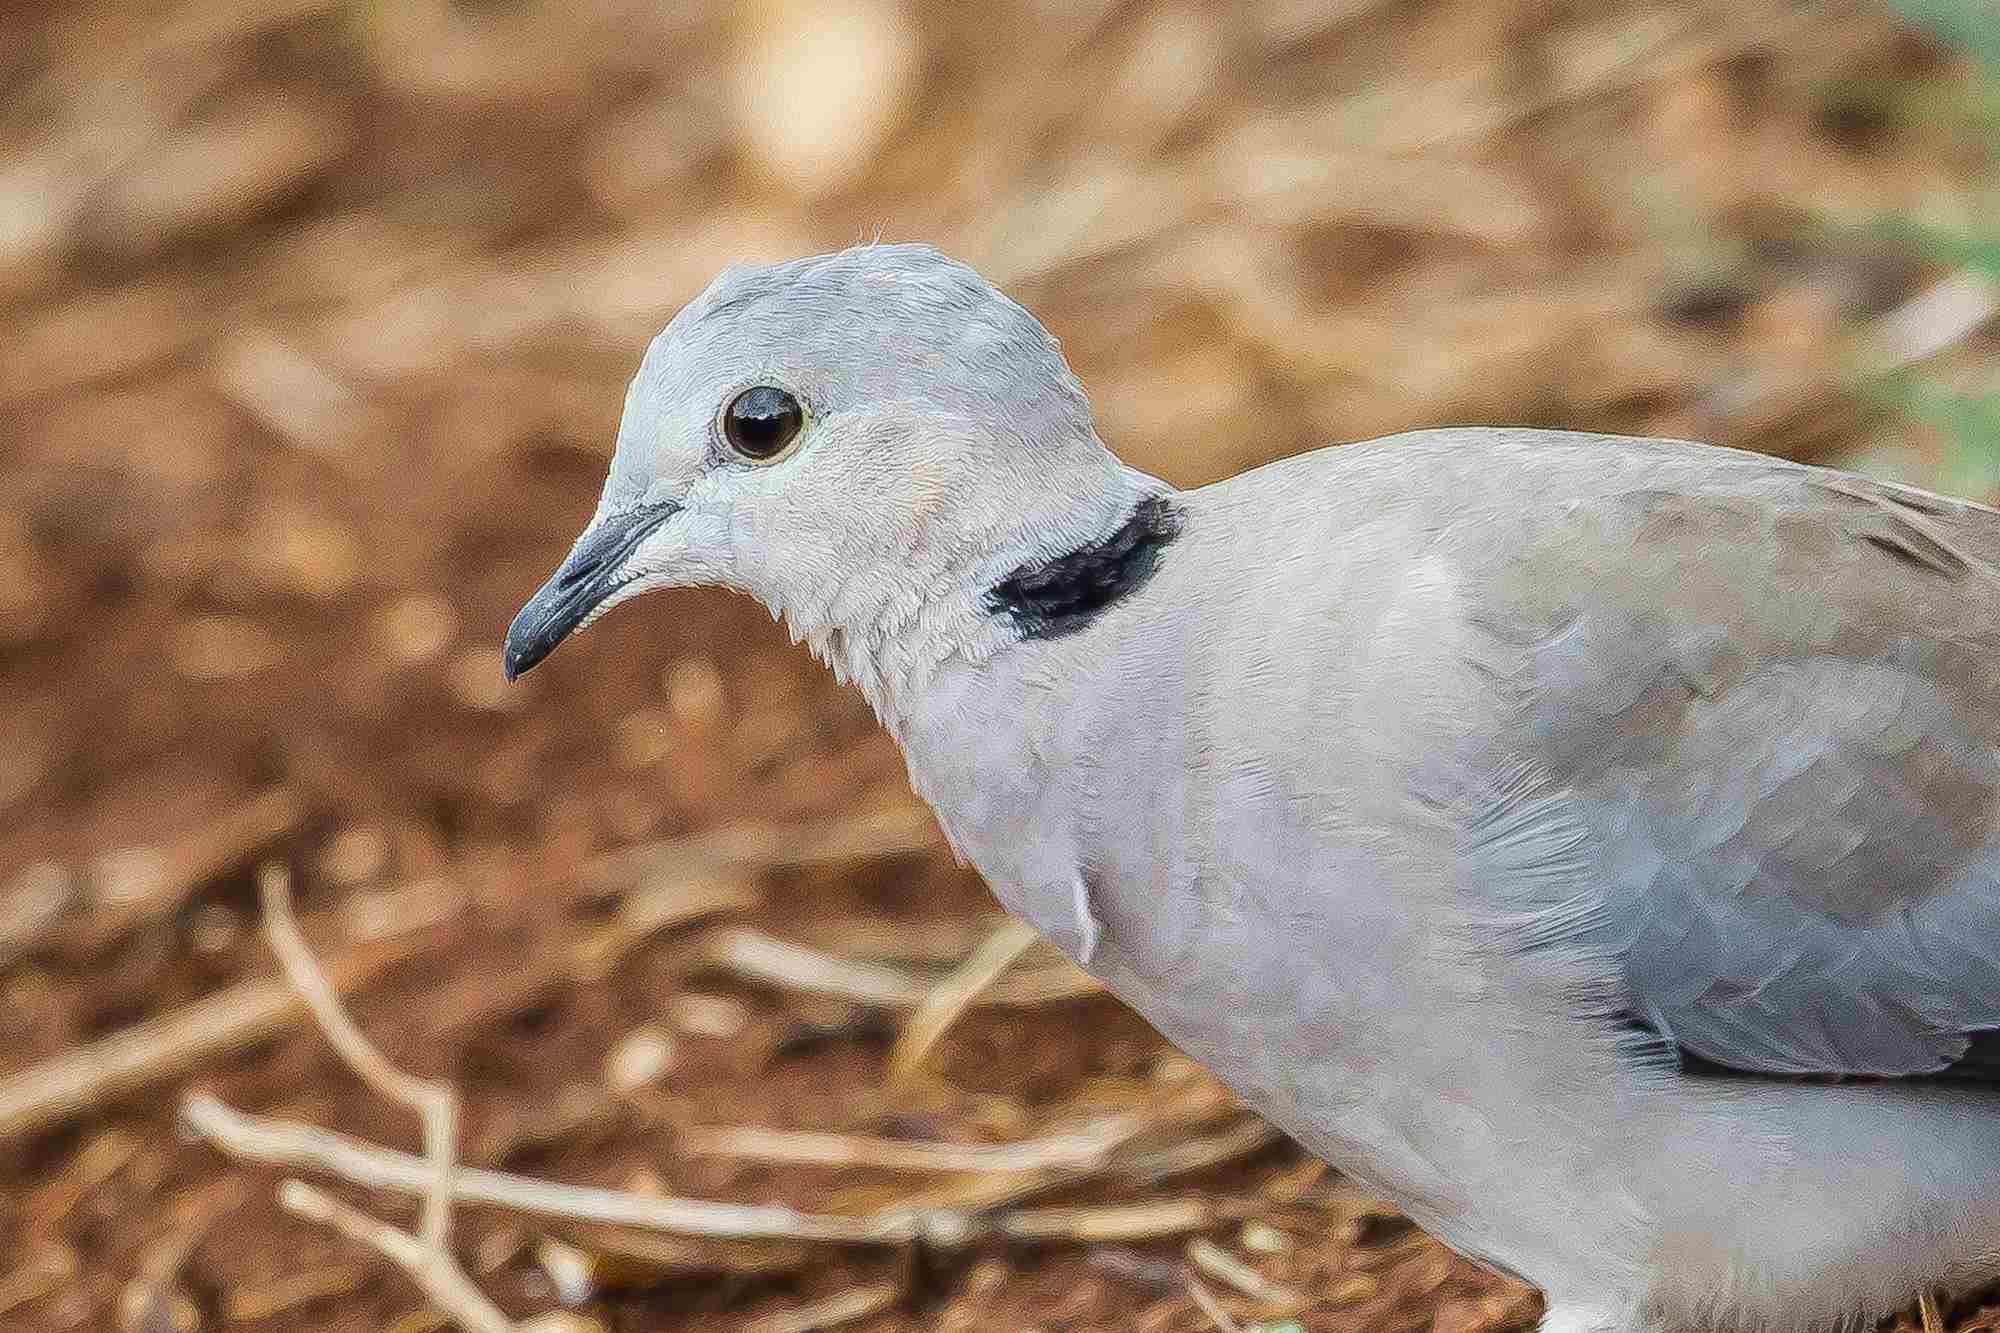 Ring-necked dove on the ground